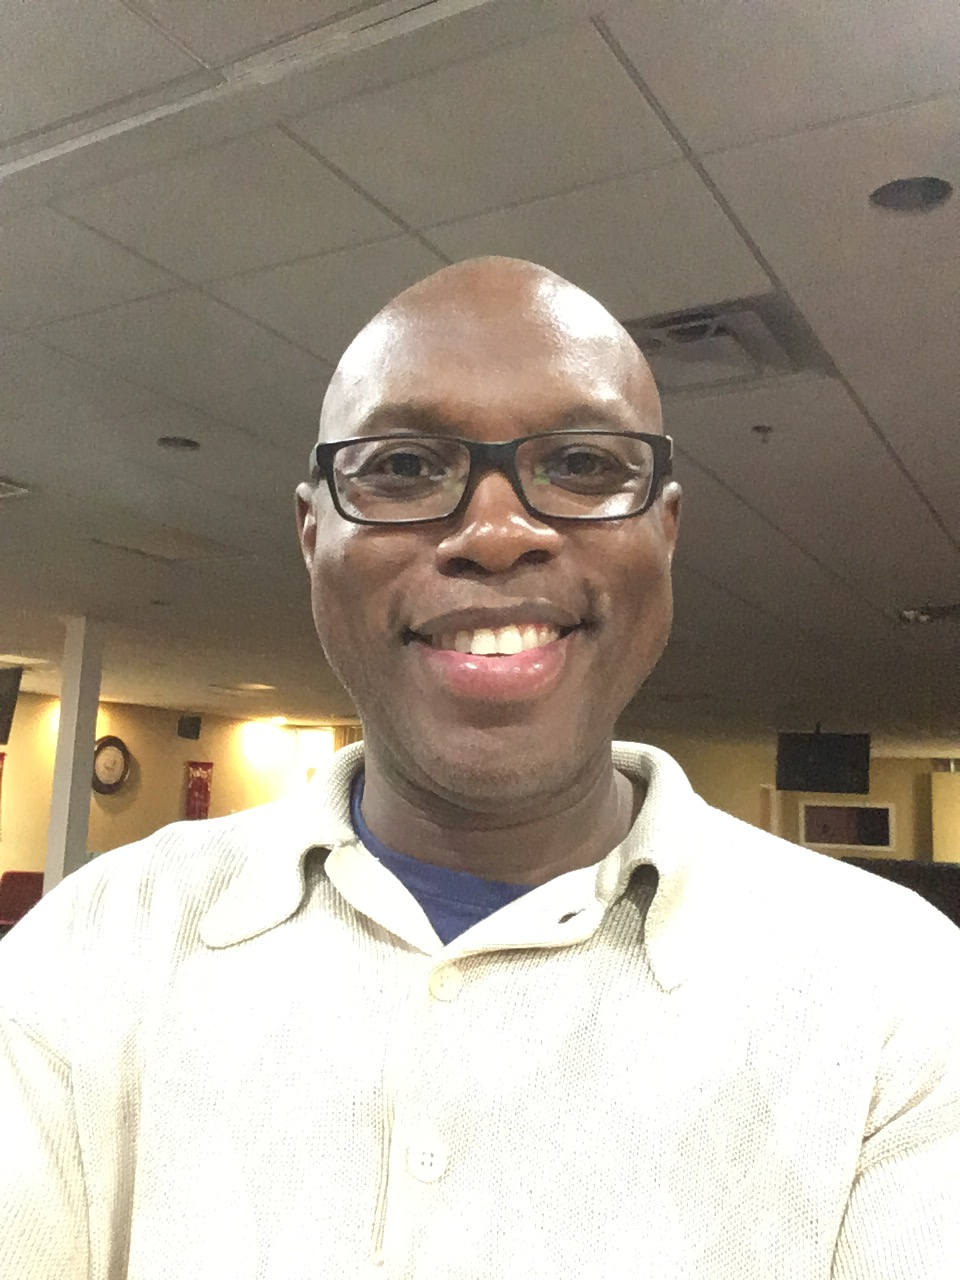 Abraham Carter, Interlibrary Loan / Document Delivery Supervisor of Regent University Library